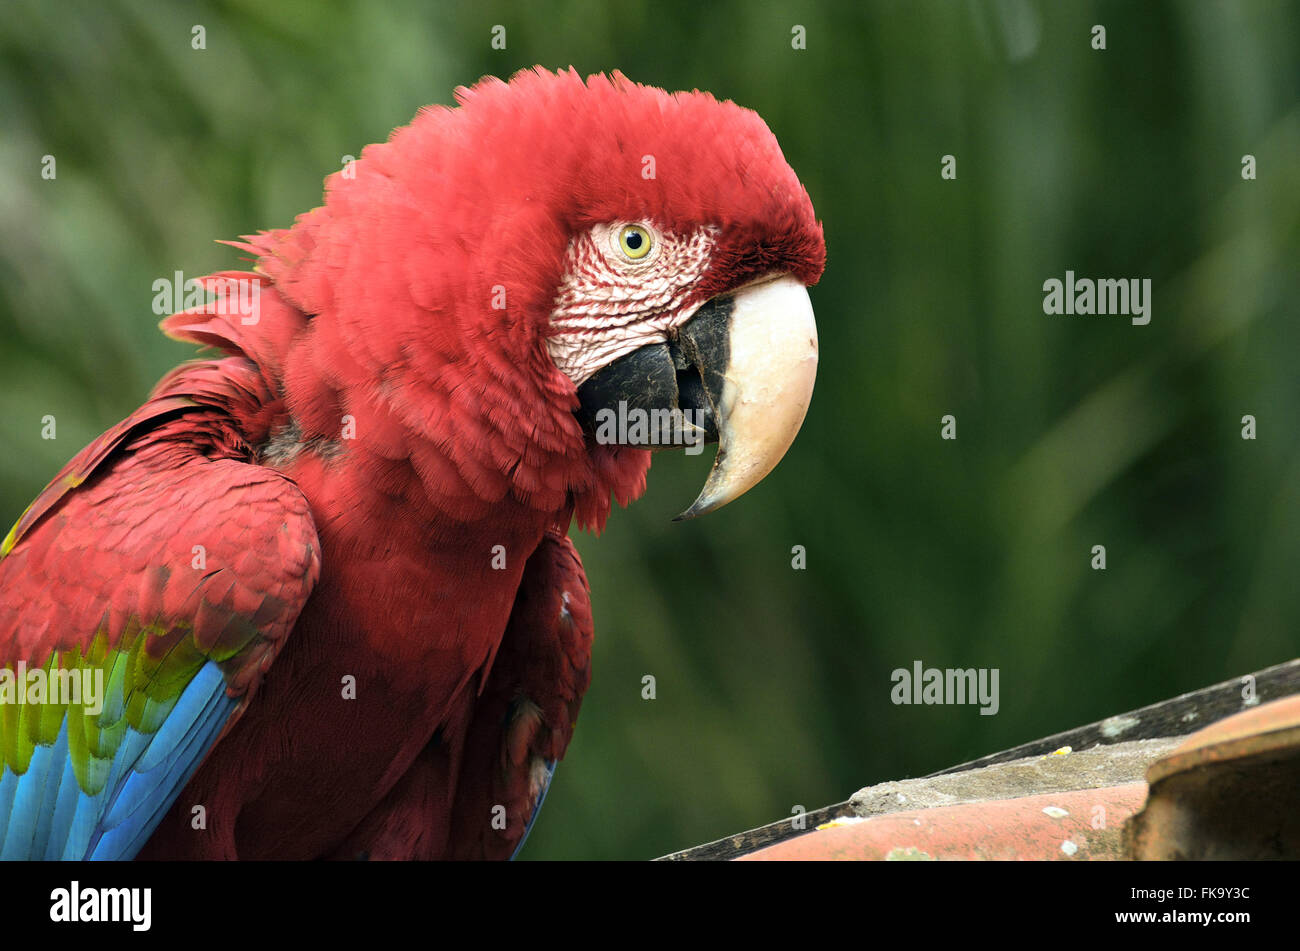 Red macaw domesticated - Stock Image